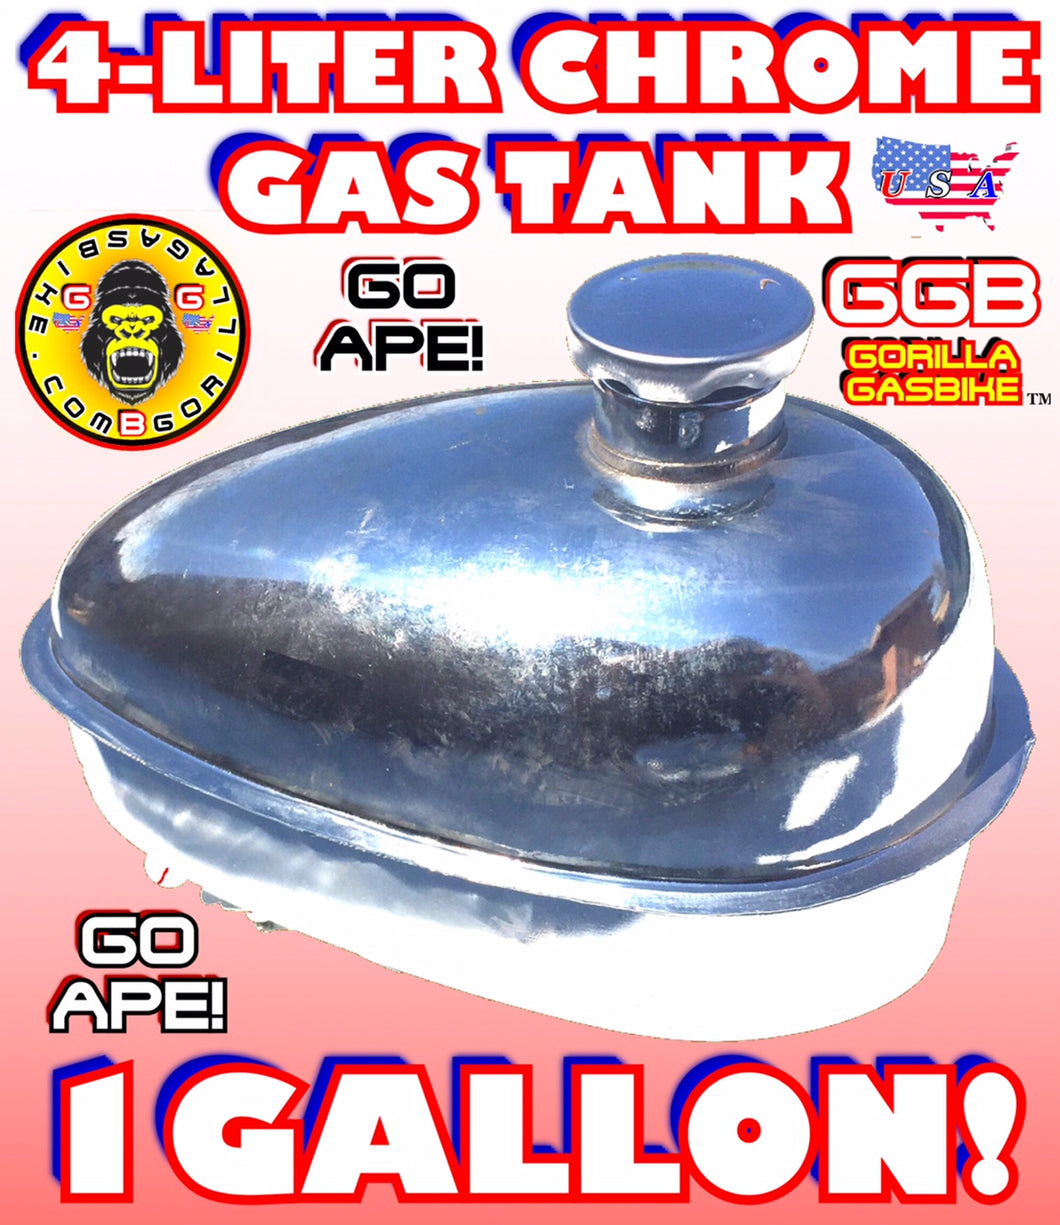 GAS TANK CHROME 4 LITER FOR 2-STROKE 4-STROKE 48CC/66CC/80CC MOTORIZED BIKE